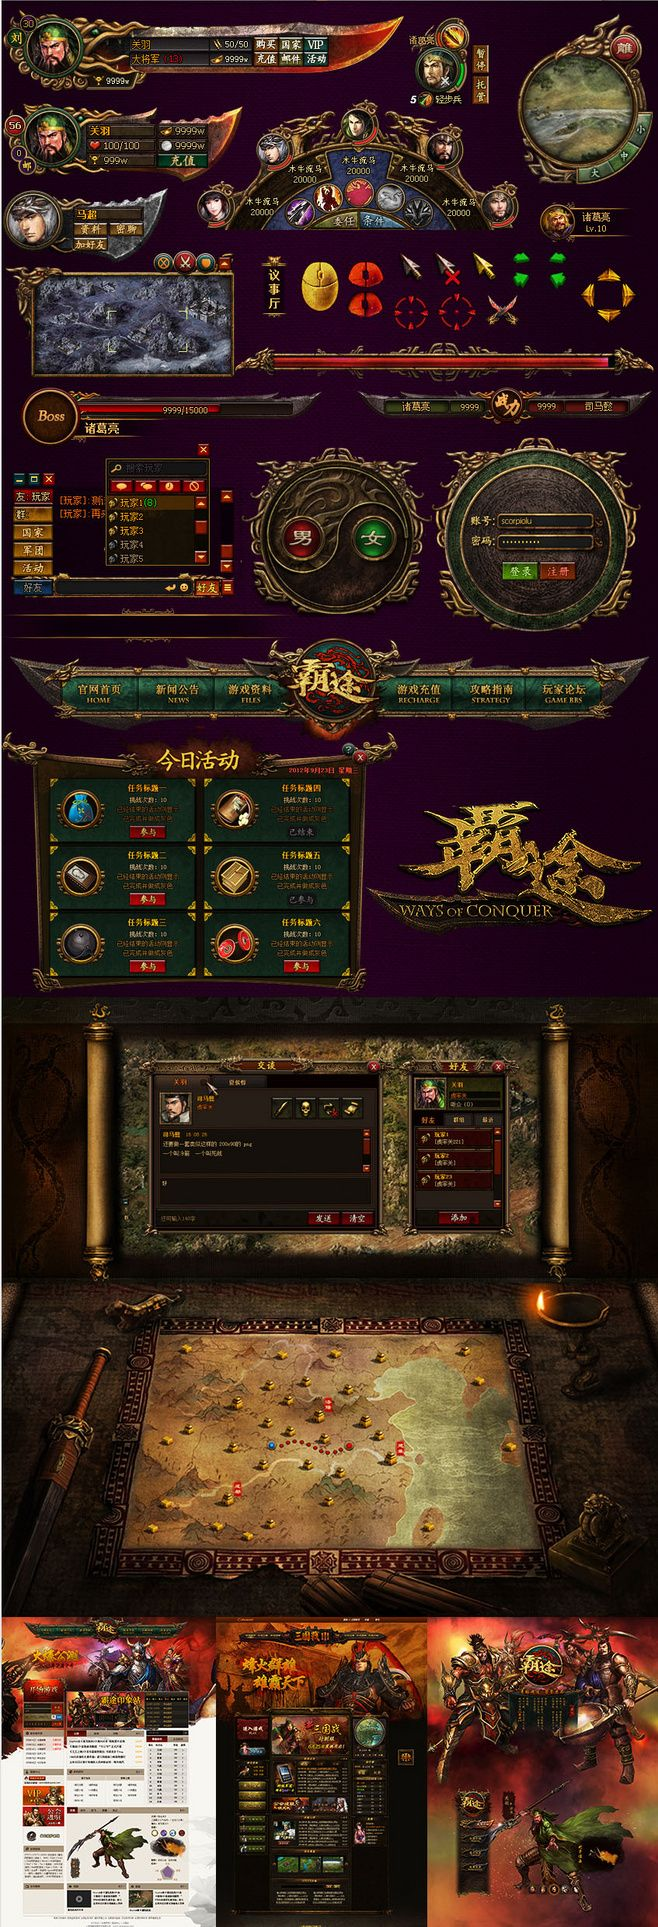 game user interface gui ui | Create your own roleplaying game material w/ RPG Bard: www.rpgbard.com | Writing inspiration for Dungeons and Dragons DND D&D Pathfinder PFRPG Warhammer 40k Star Wars Shadowrun Call of Cthulhu Lord of the Rings LoTR + d20 fantasy science fiction scifi horror design | Not Trusty Sword art: click artwork for source